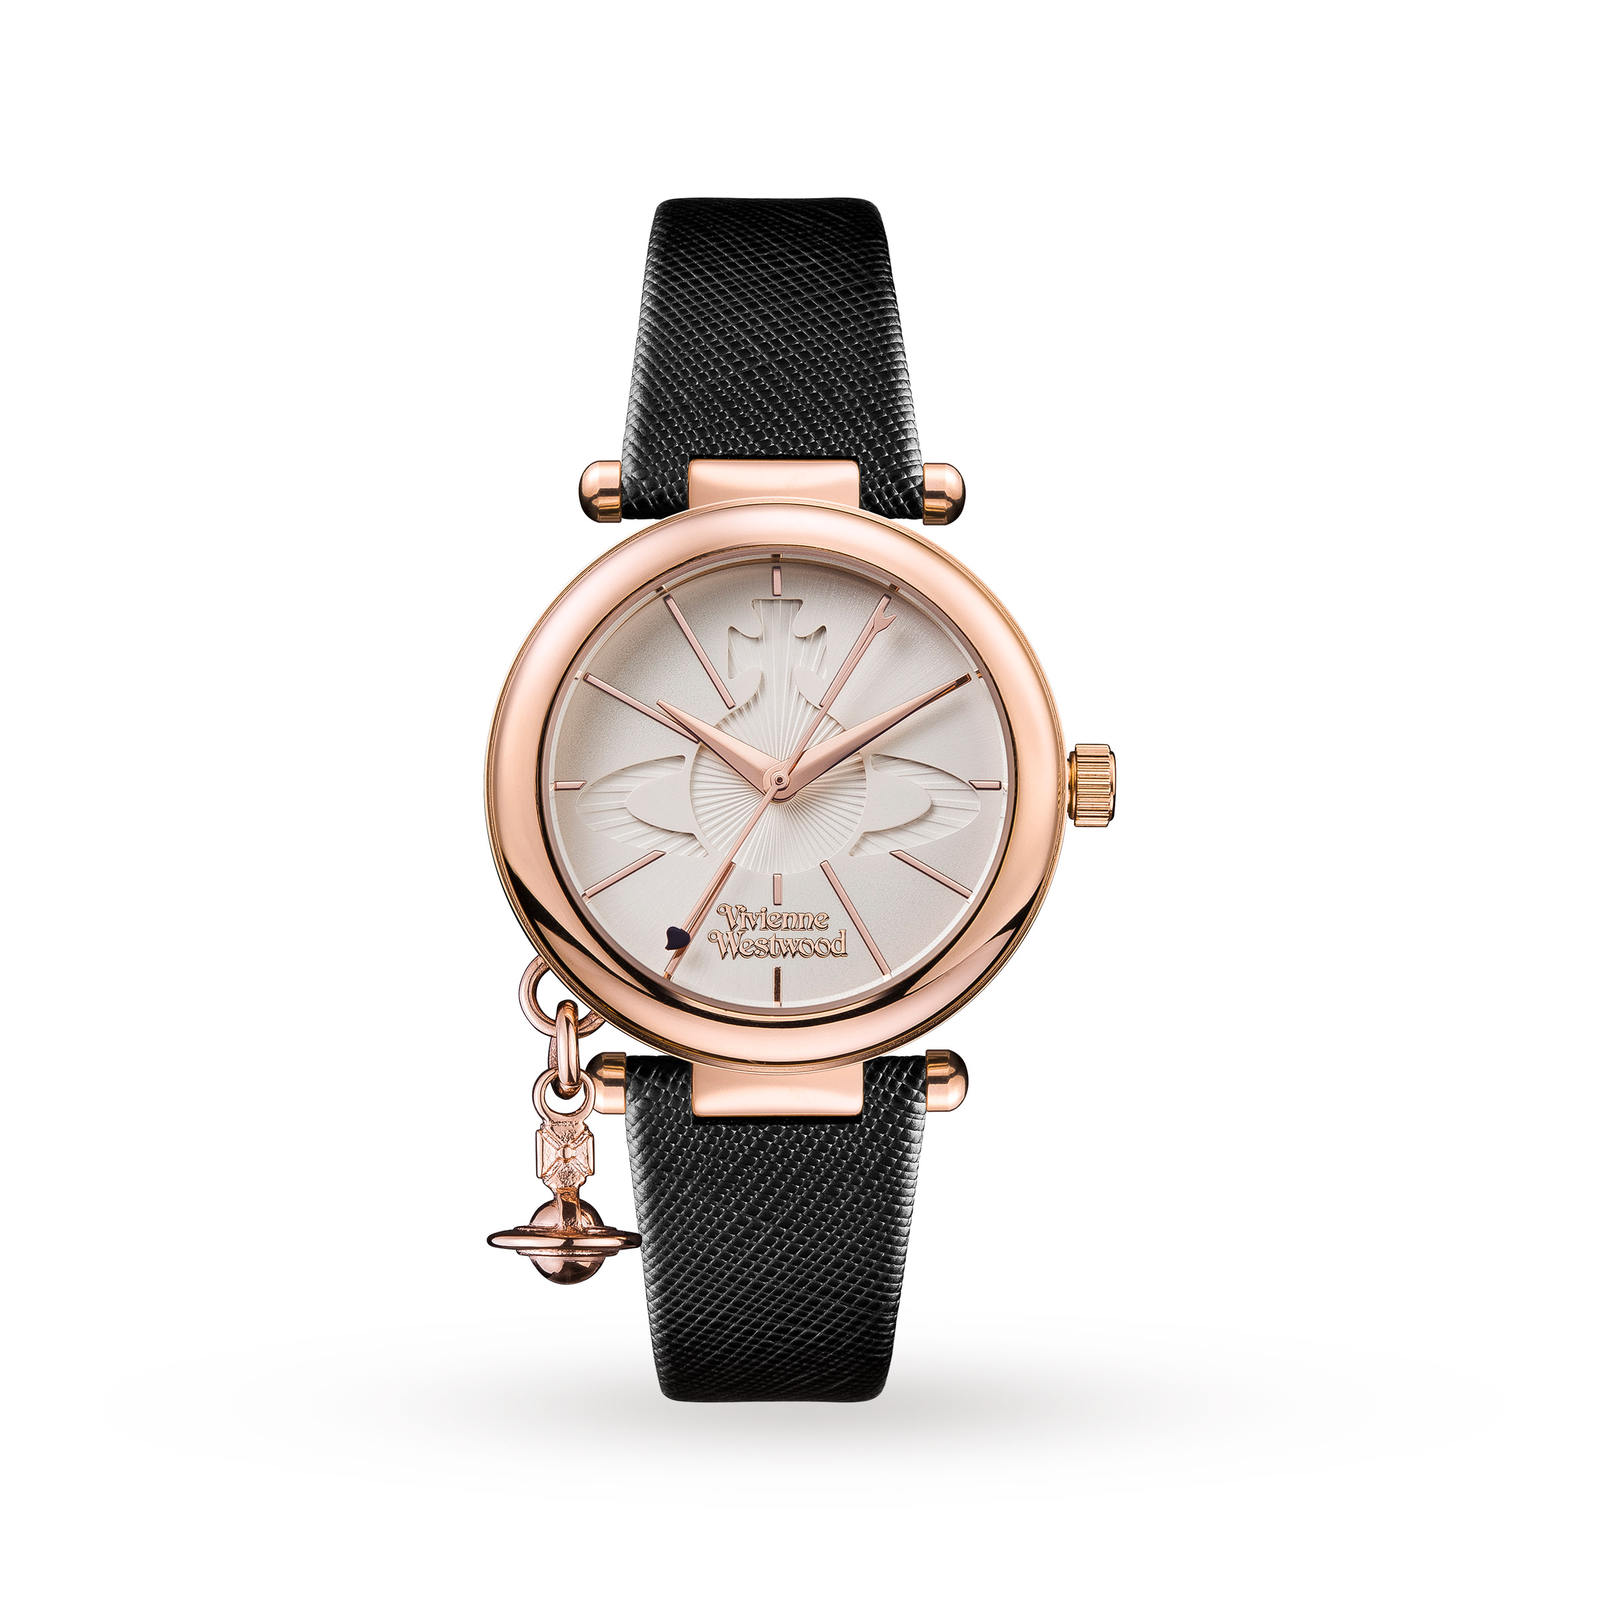 Vivienne Westwood Ladies Orb Watch